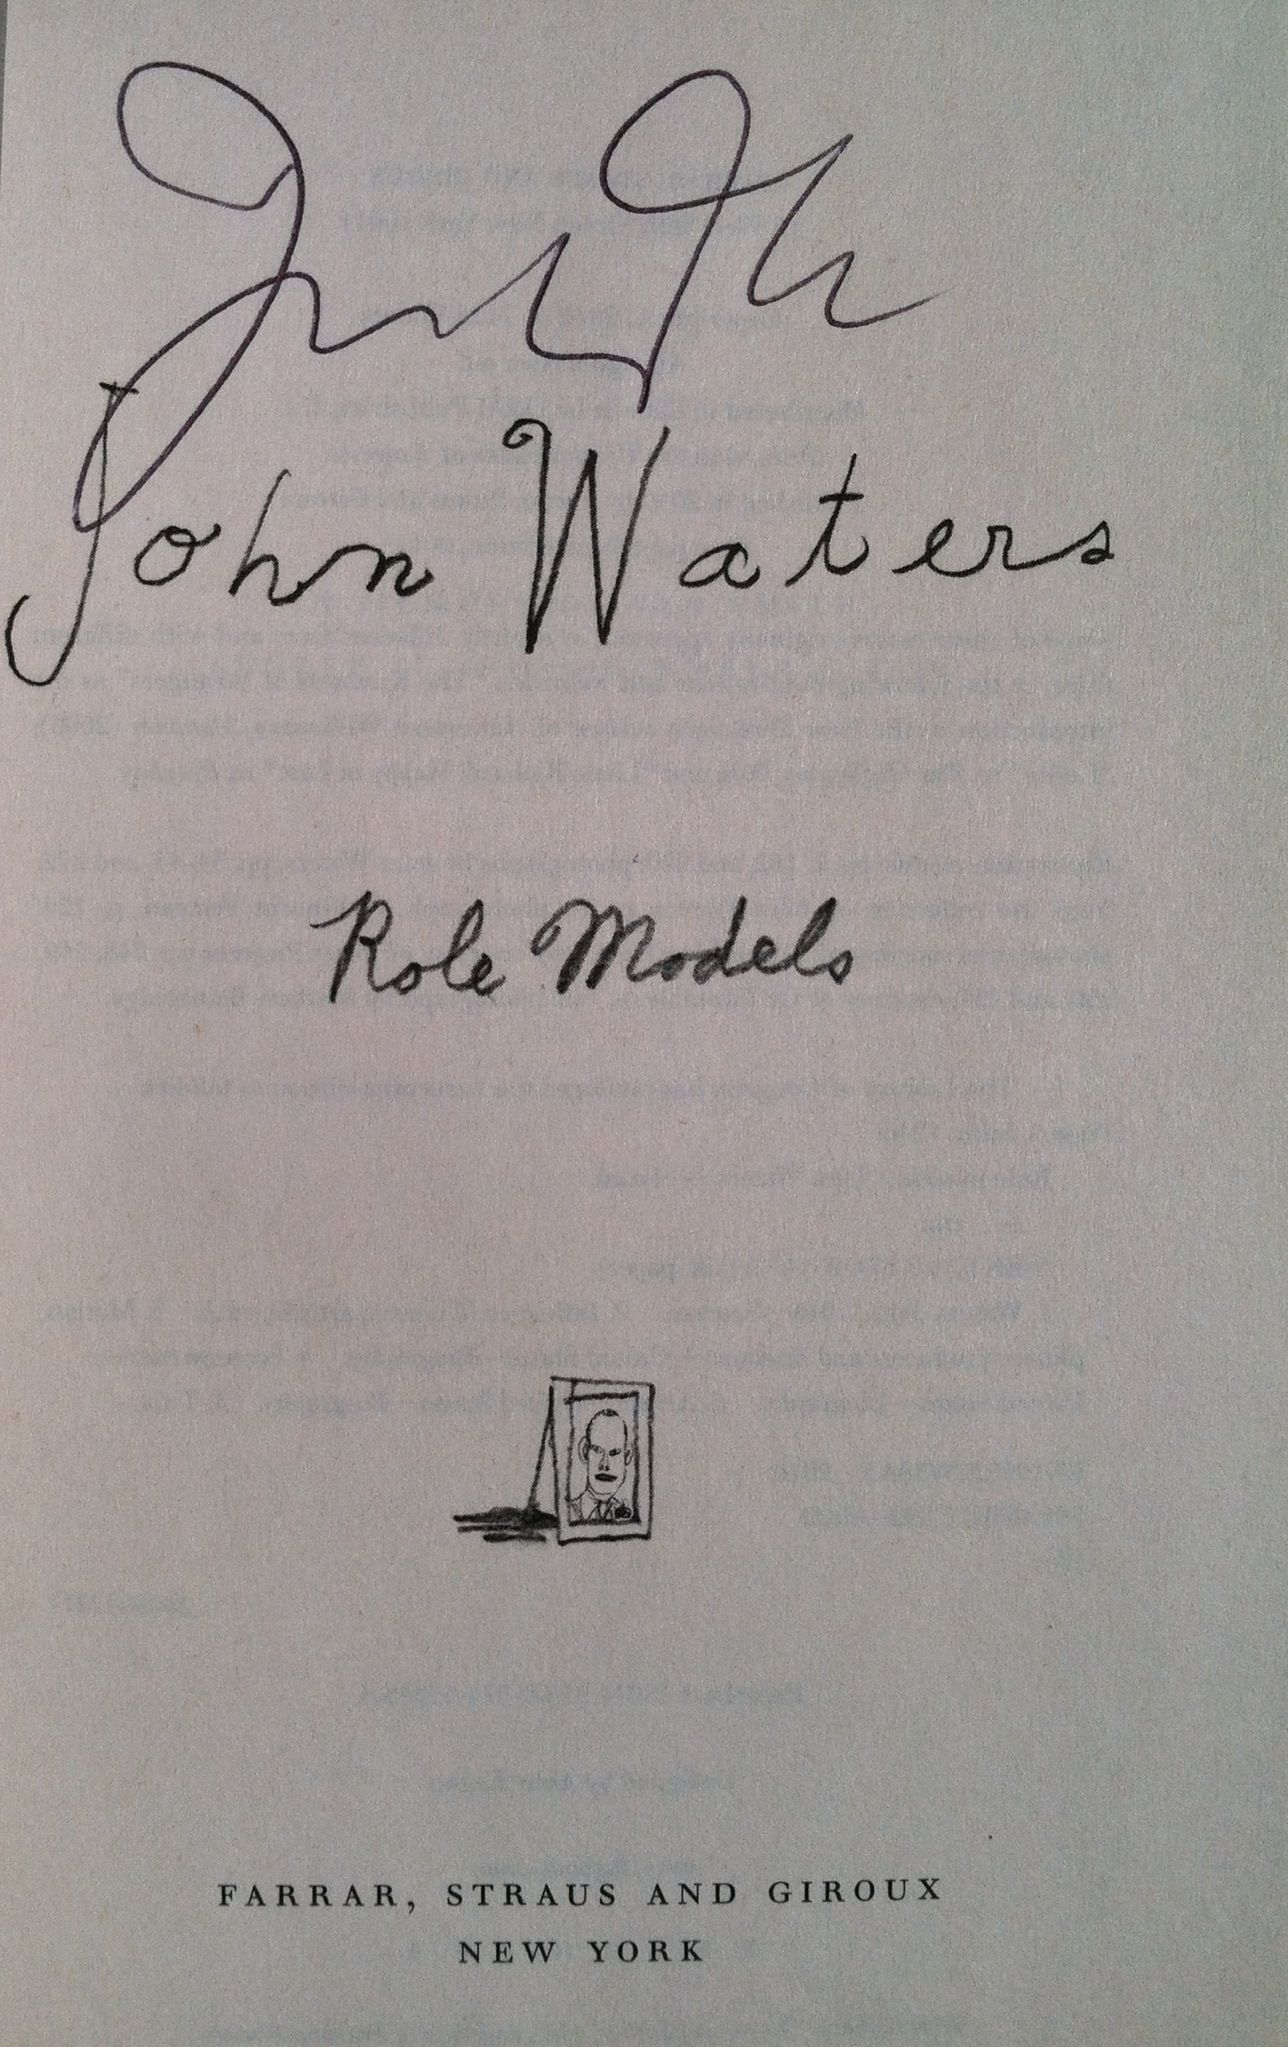 flyleaf essay compilation john waters role models the writer flyleaf essay compilation john waters role models the writer